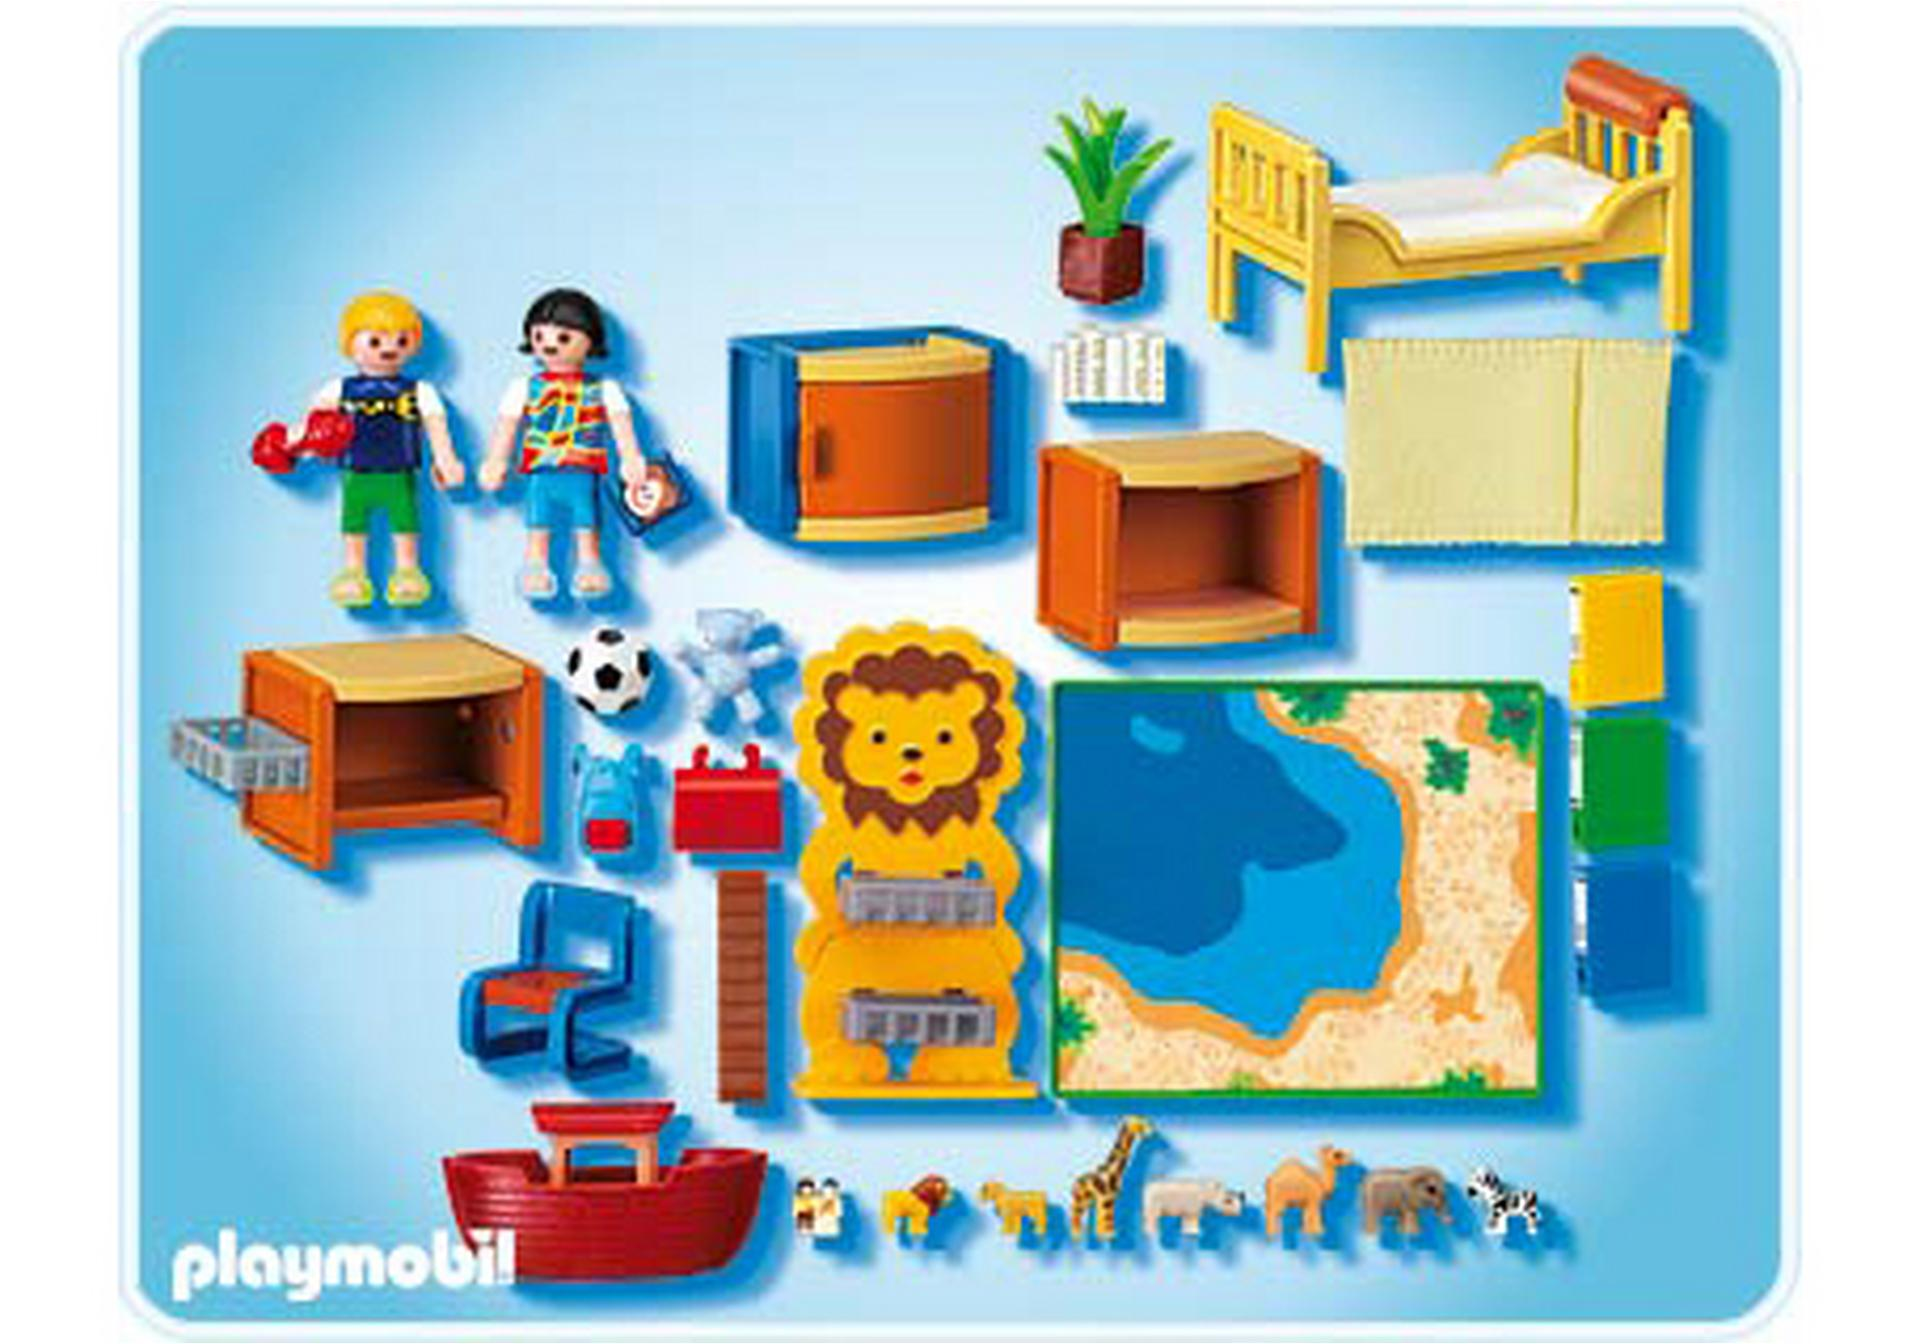 Children s room 4287 a playmobil for Playmobil kinderzimmer 4287